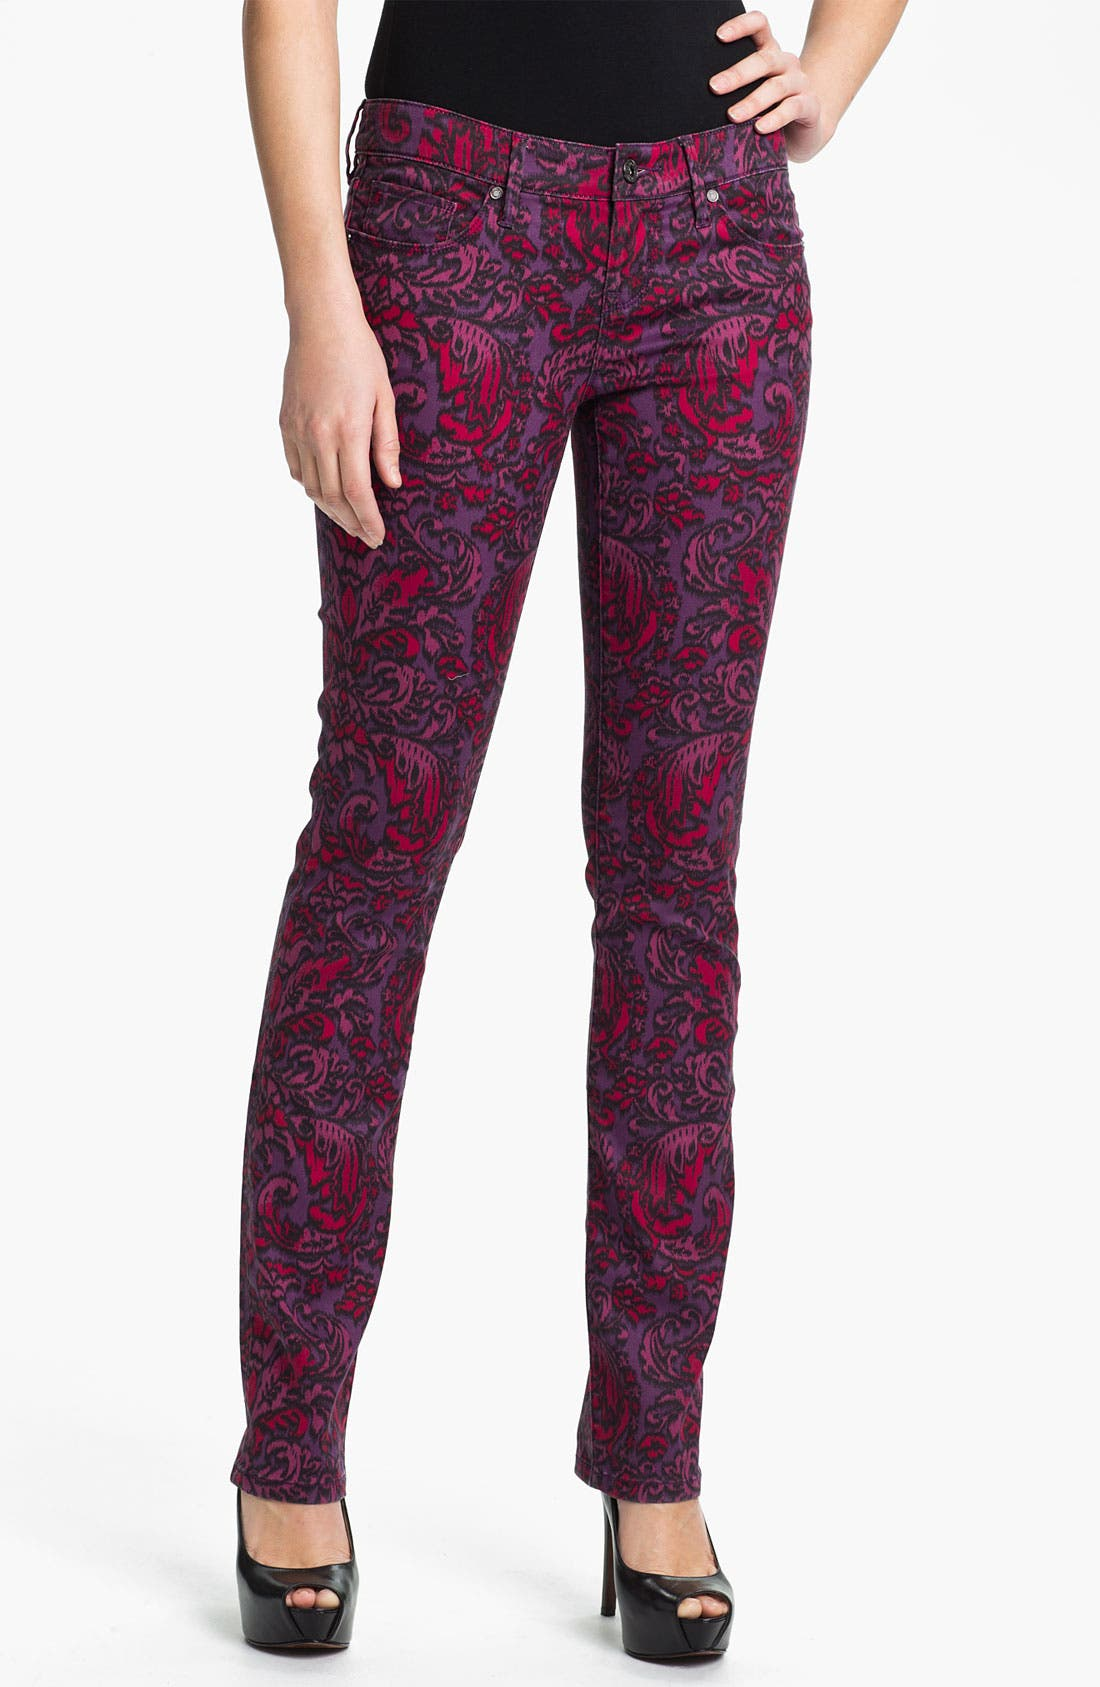 Alternate Image 1 Selected - Isaac Mizrahi Jeans 'Emma' Straight Leg Print Jeans (Online Exclusive)